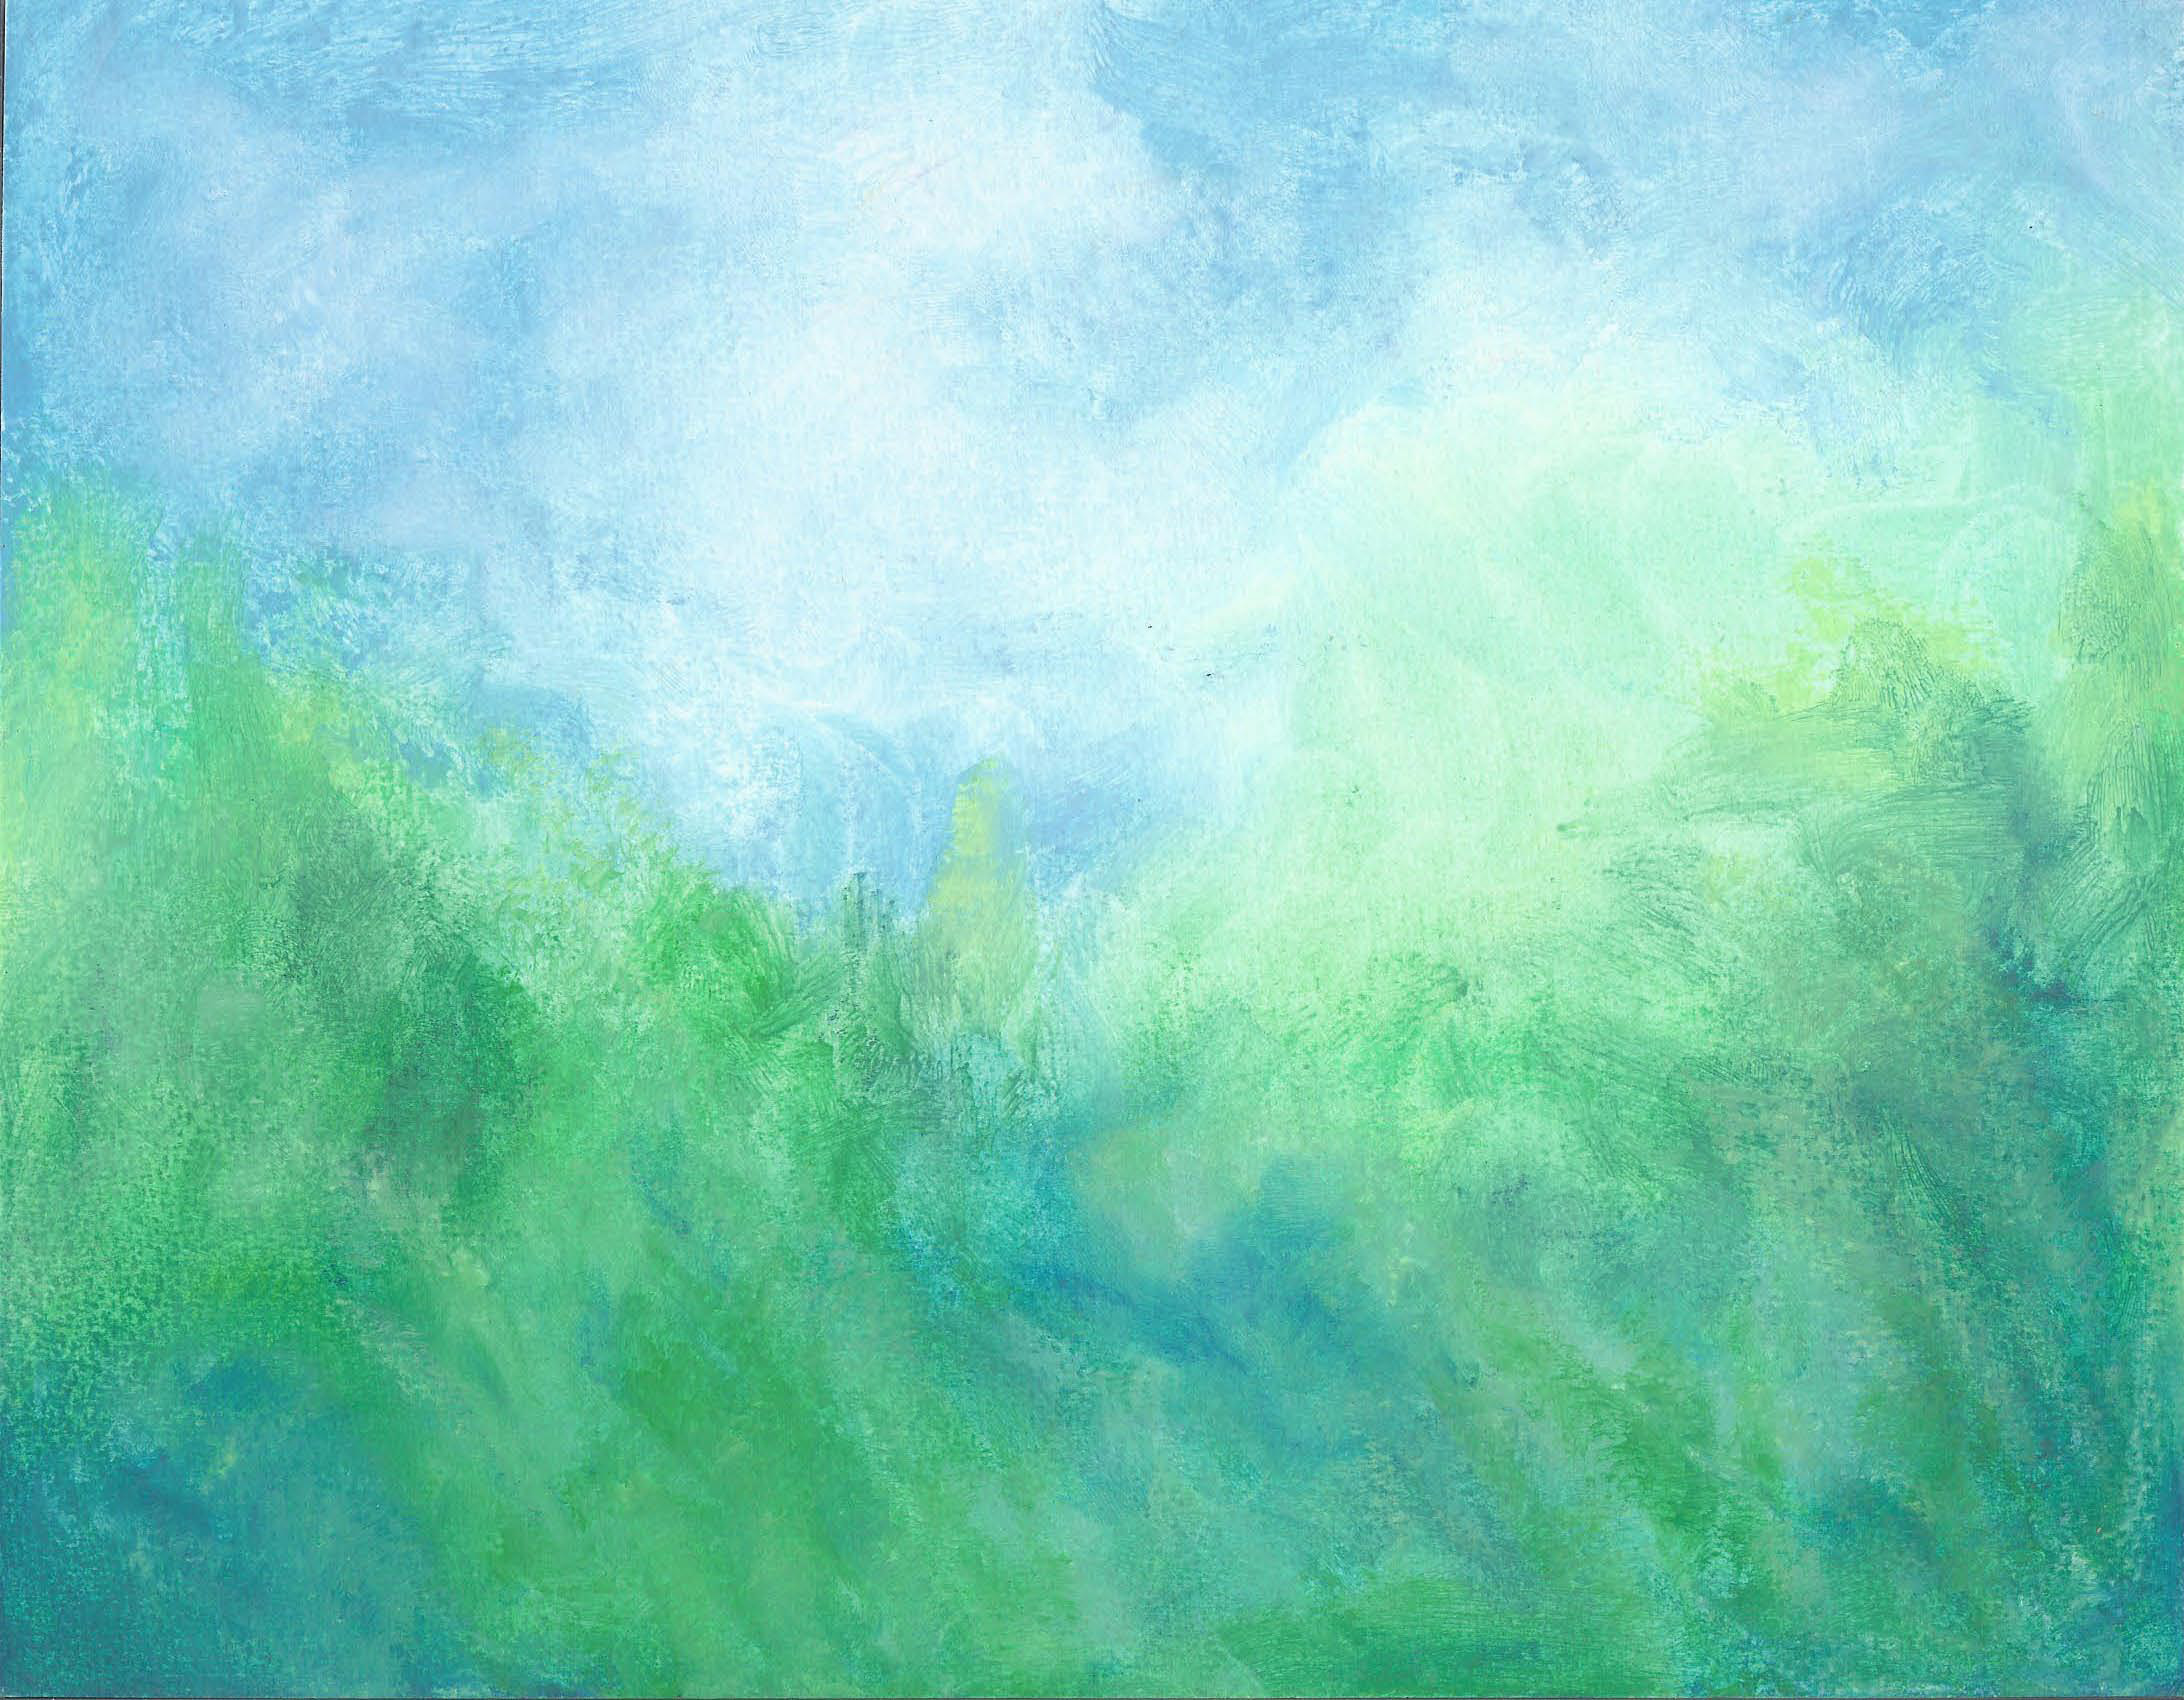 The Wind in the Trees Oil Pastel 8 X 11 - $125